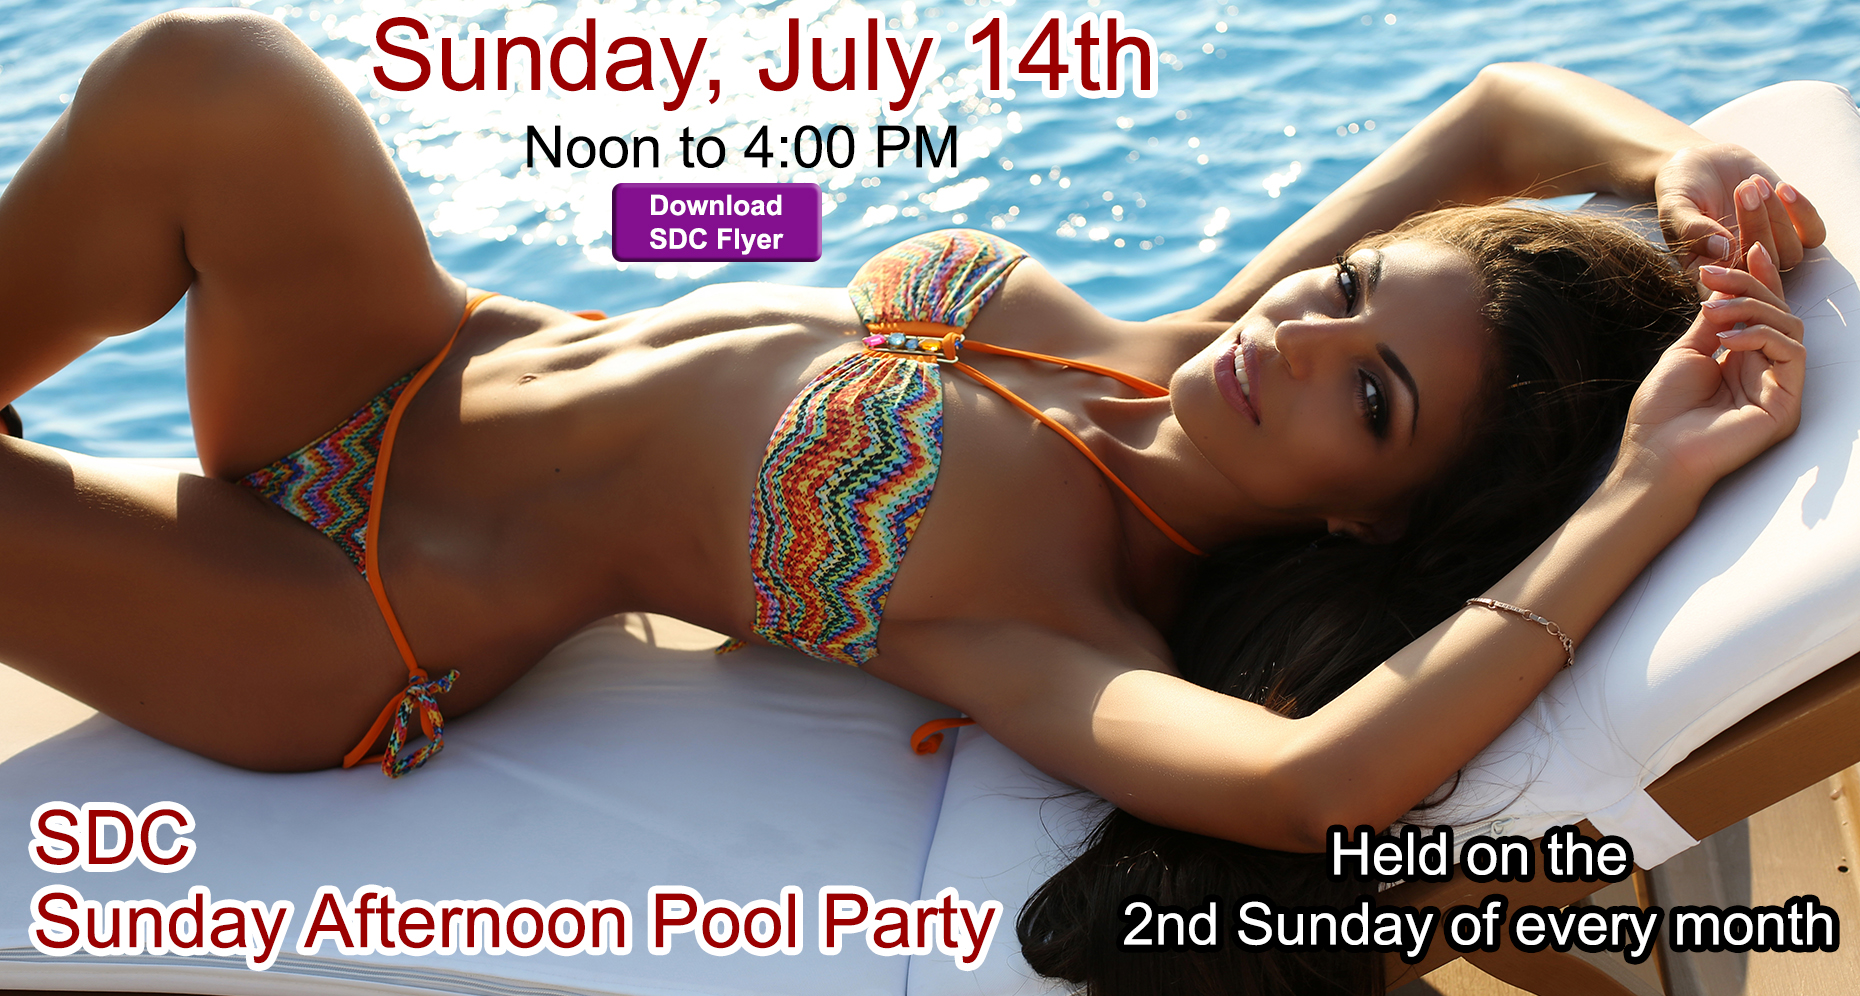 SDC Sunday Pool Party